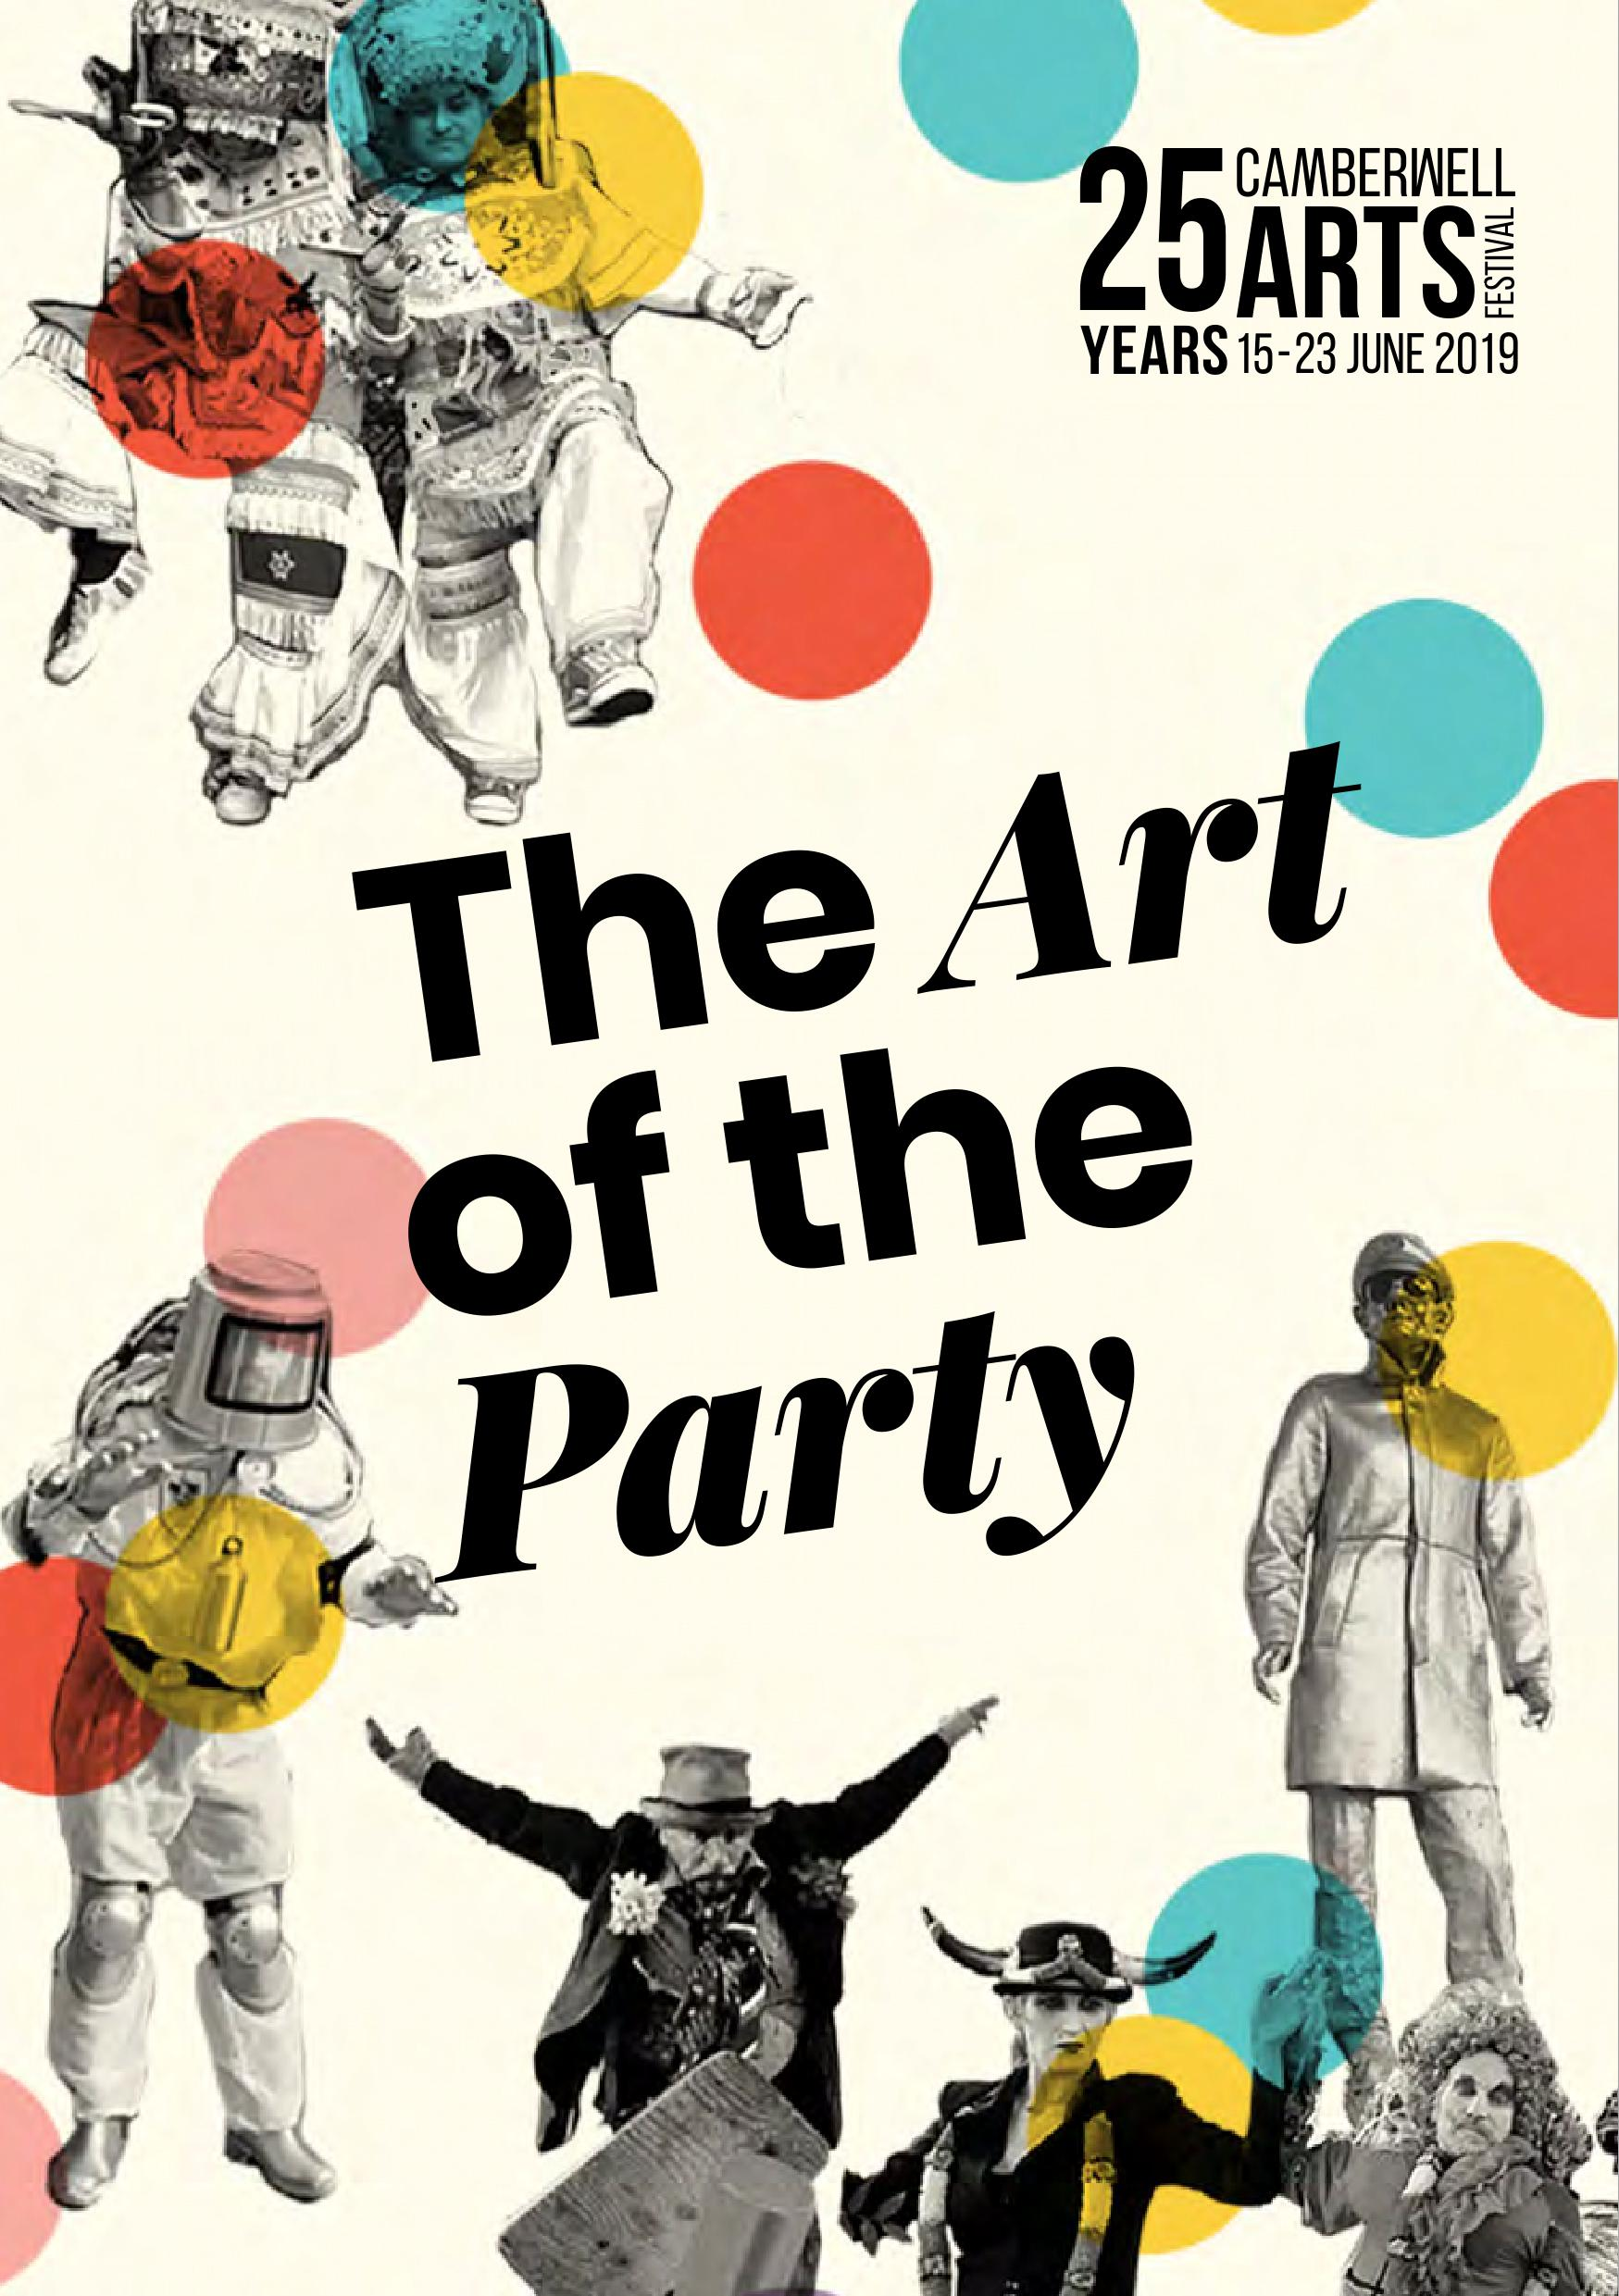 2019 Summer - Camberwell Arts Festival 2019 - The Art of the Party